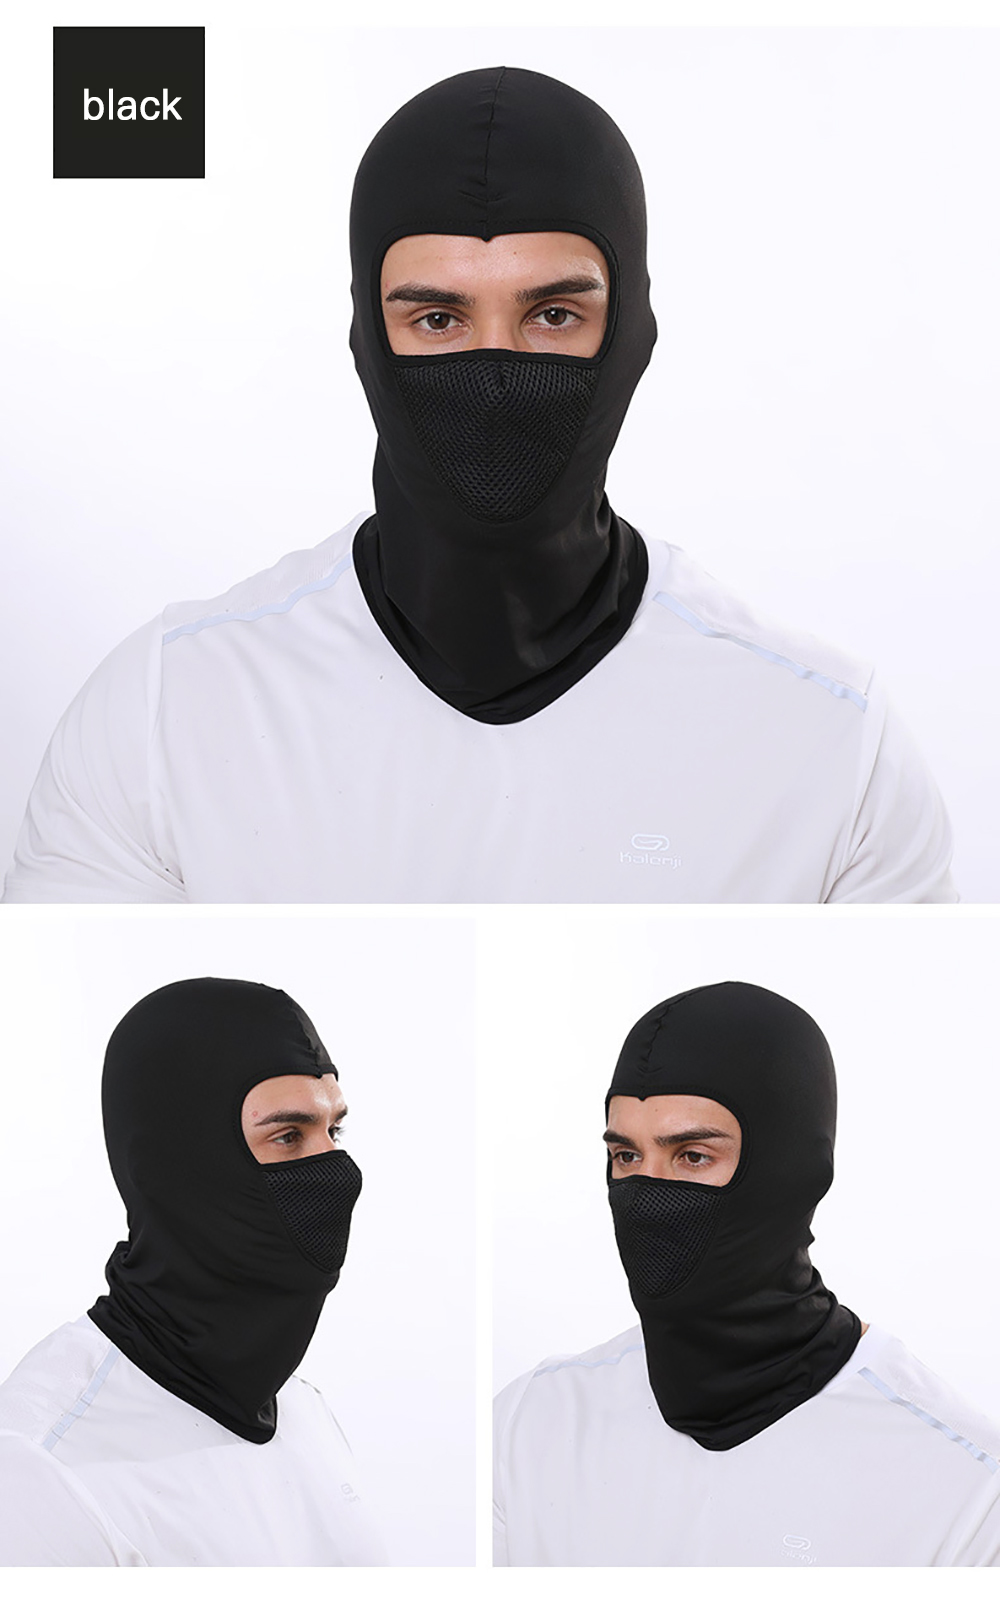 H87fba0b3cdd440b6baedb7052bfa9f572 Zacro Outdoor Cycling Hooded Training Mask for Men Women Summer Sport Facemask Windproof Sunscreen Dustproof Bicycle Ski Mask